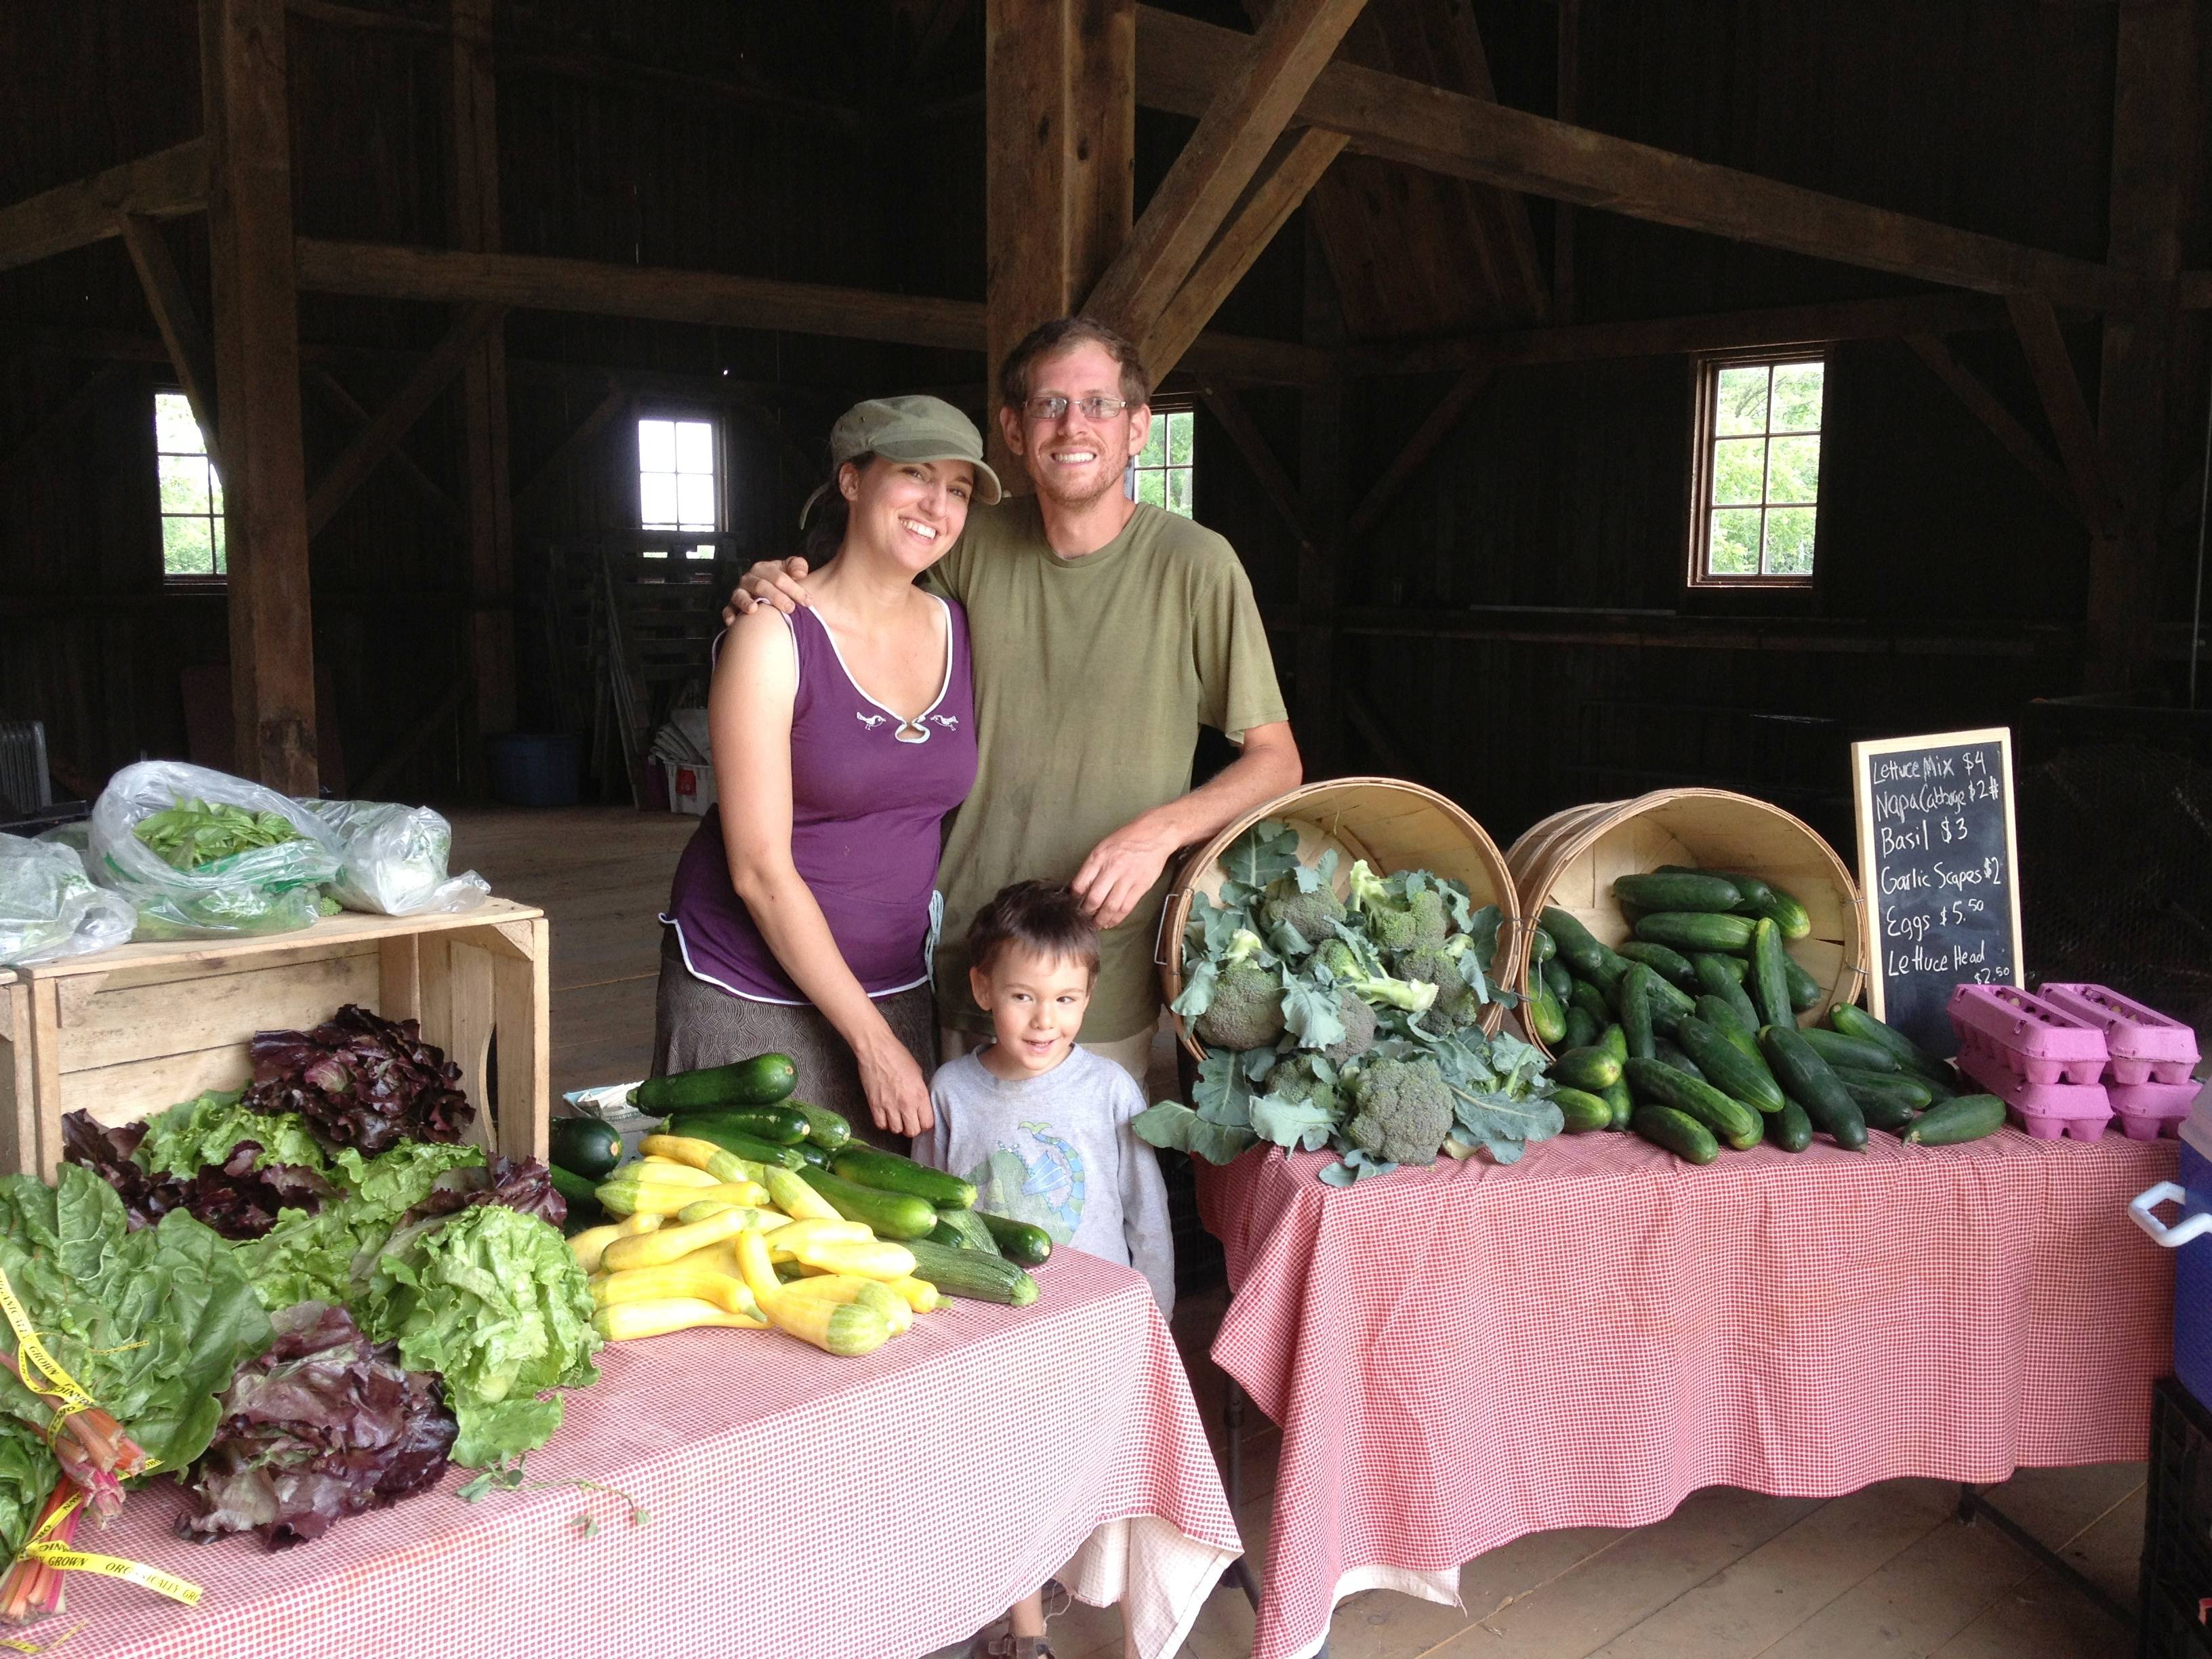 Alison Parker and Alex Needham, owners of Radical Root Farm, operate Libertyville's first certified organic farm. Visit their farm stand at Casey Farm, 31330 Milwaukee Ave., from 8 a.m. - 1 p.m. on Saturdays through October.Erin Cummisford